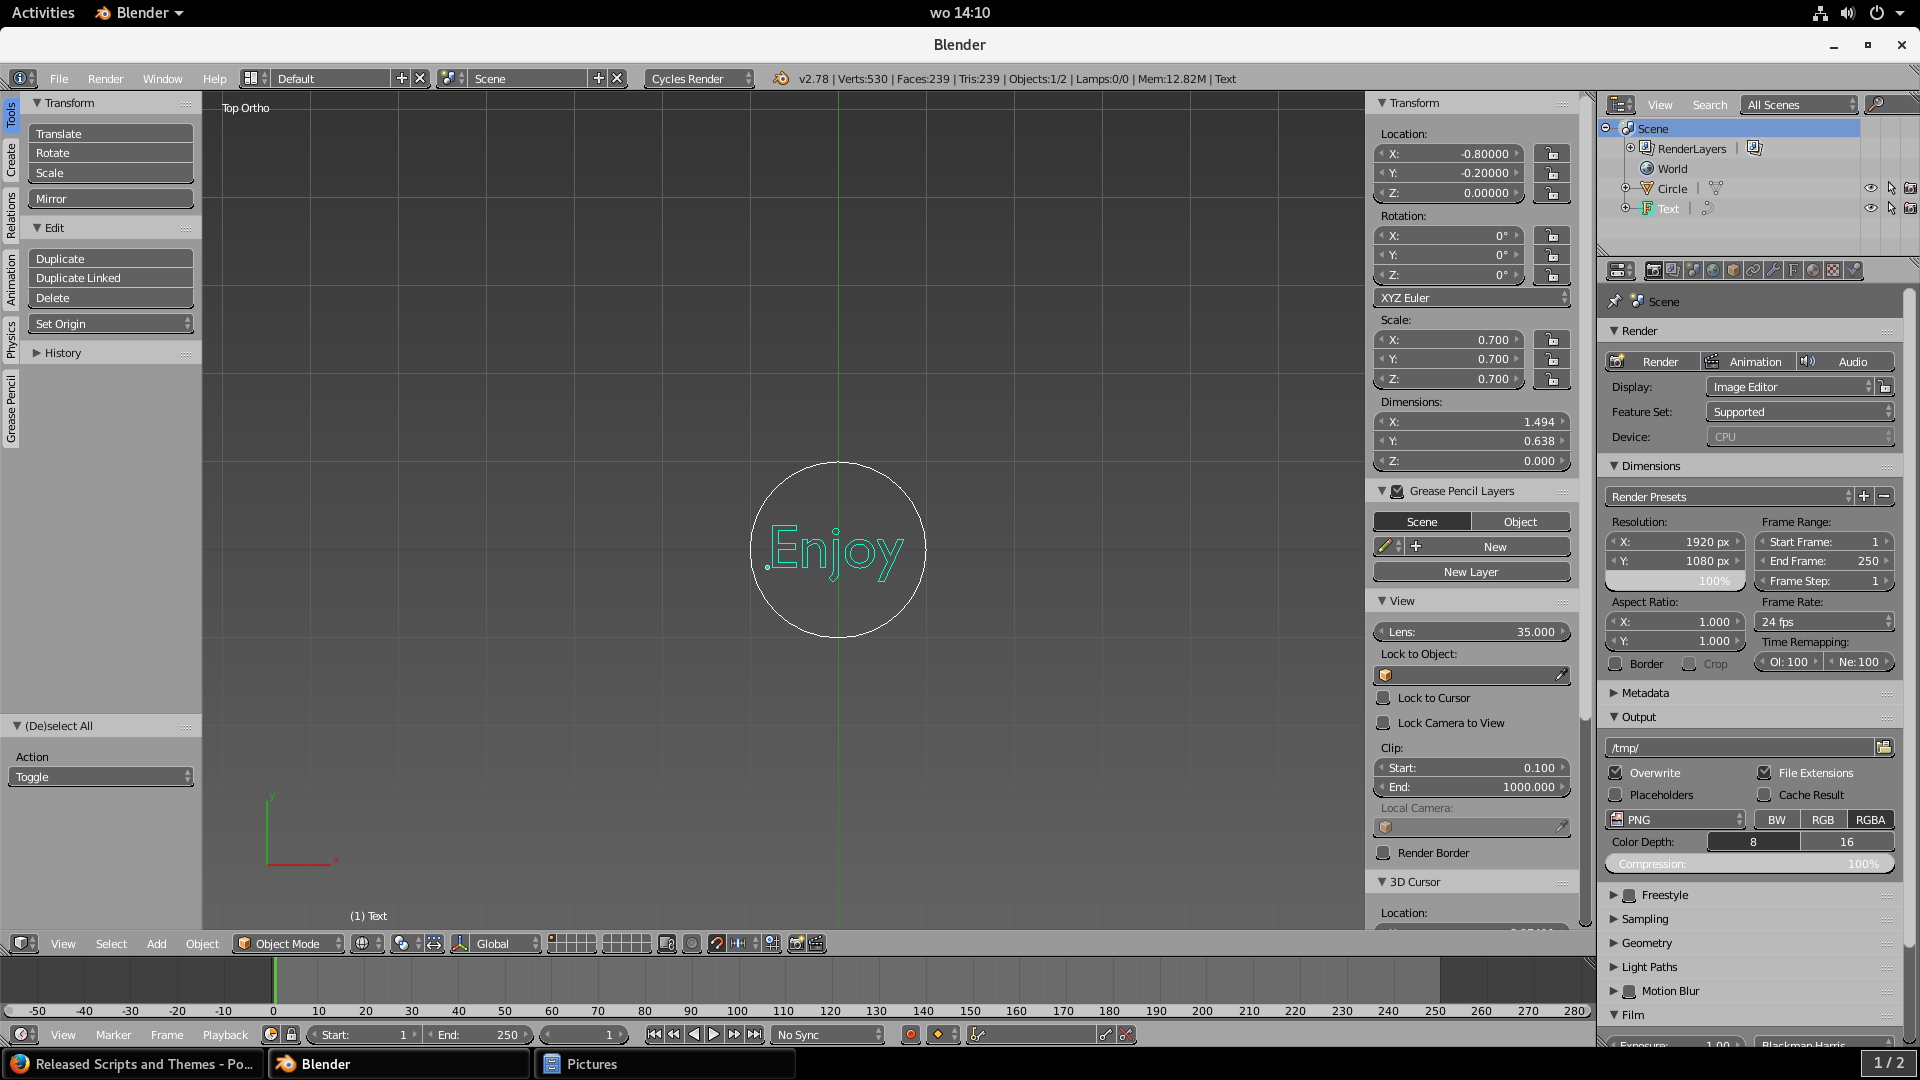 autodesk theme ,3Ds max + maya - Released Scripts and Themes